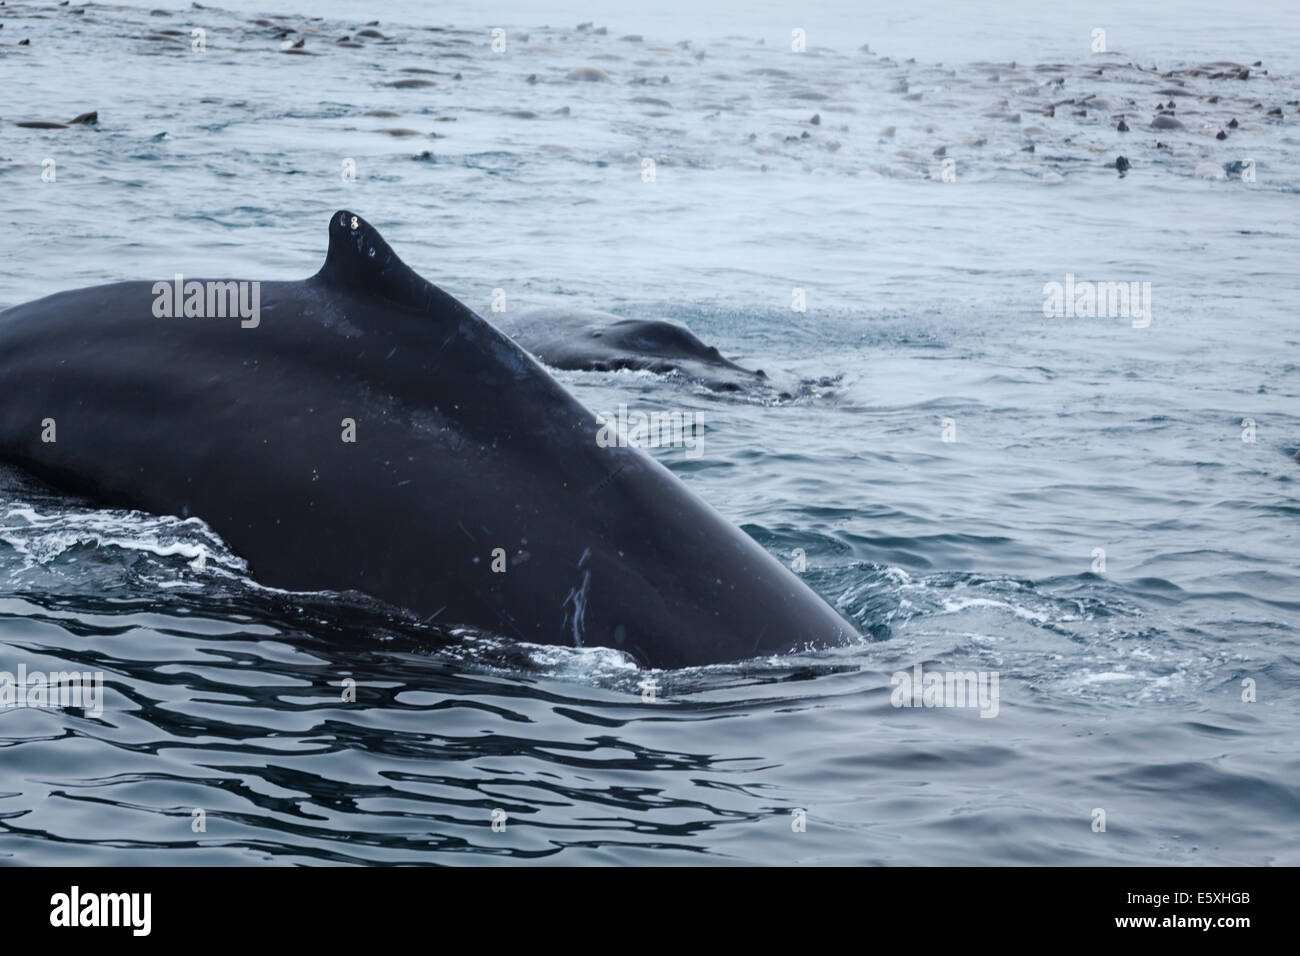 Close up of humpback whale breaching amid pod of sea lions in ocean - Stock Image